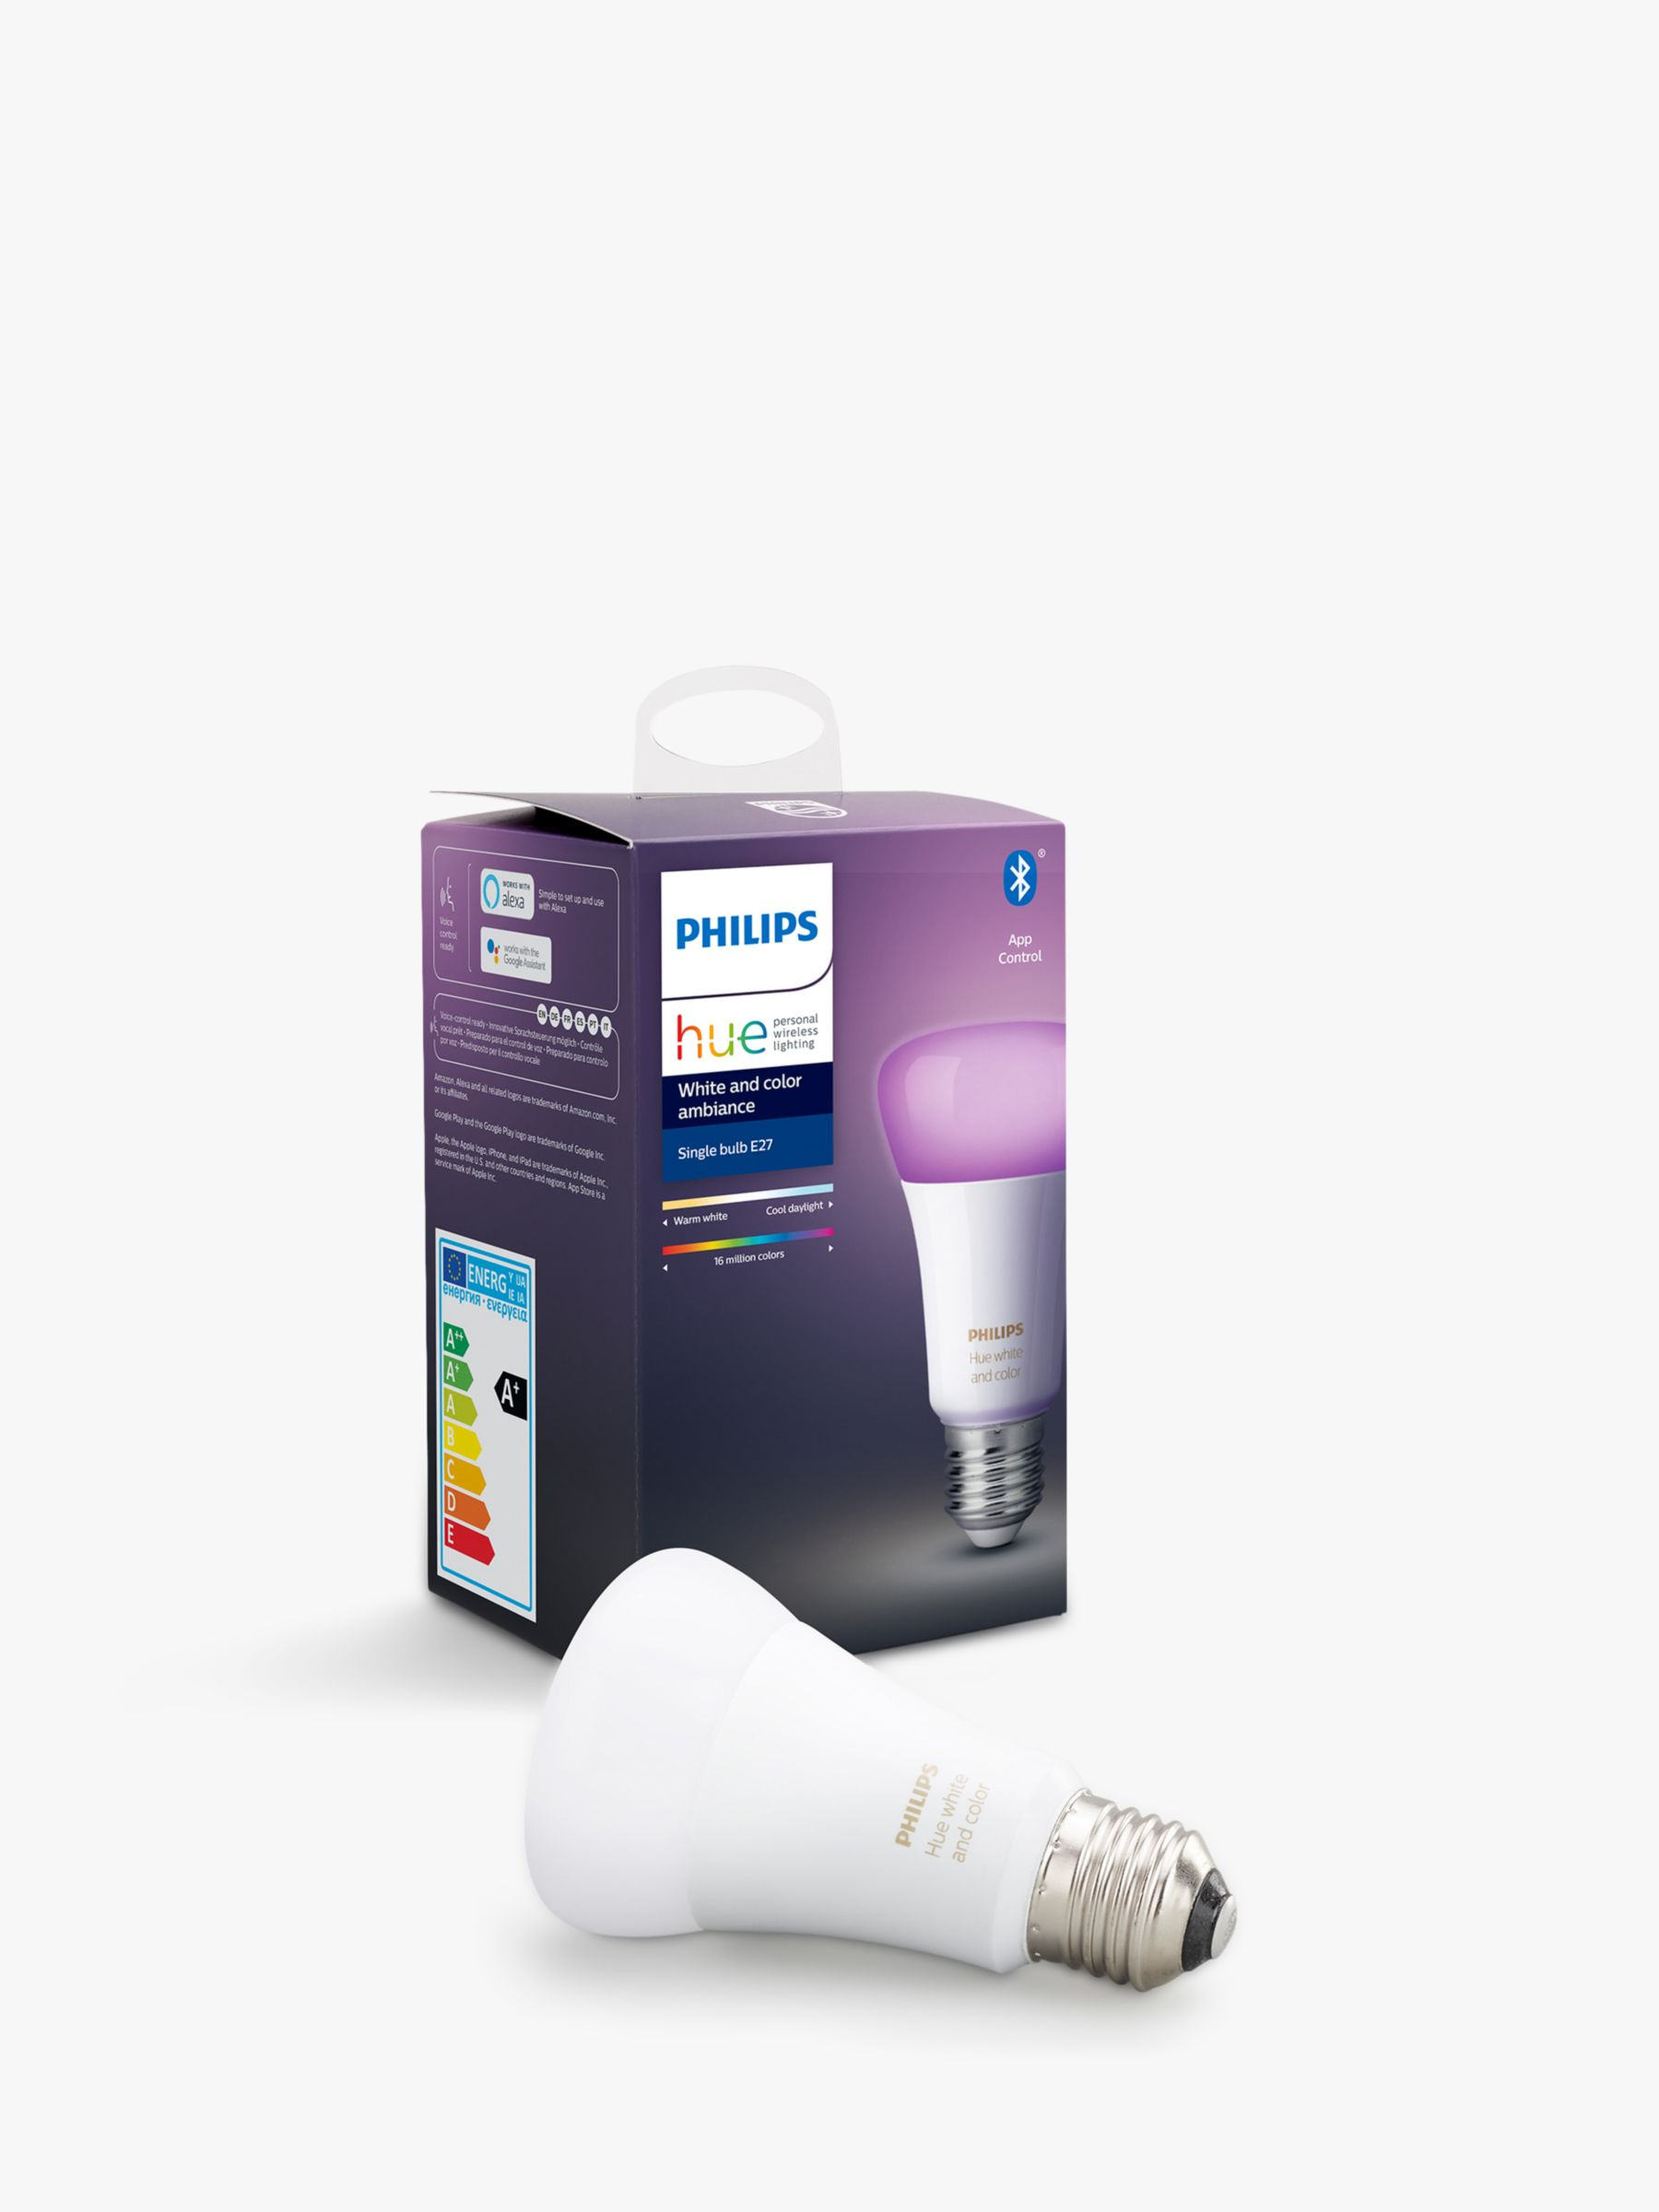 Philips Philips Hue White and Colour Ambiance Wireless Lighting LED Colour Changing Light Bulb with Bluetooth, 9W A60 E27 Edison Screw Cap Bulb, Single